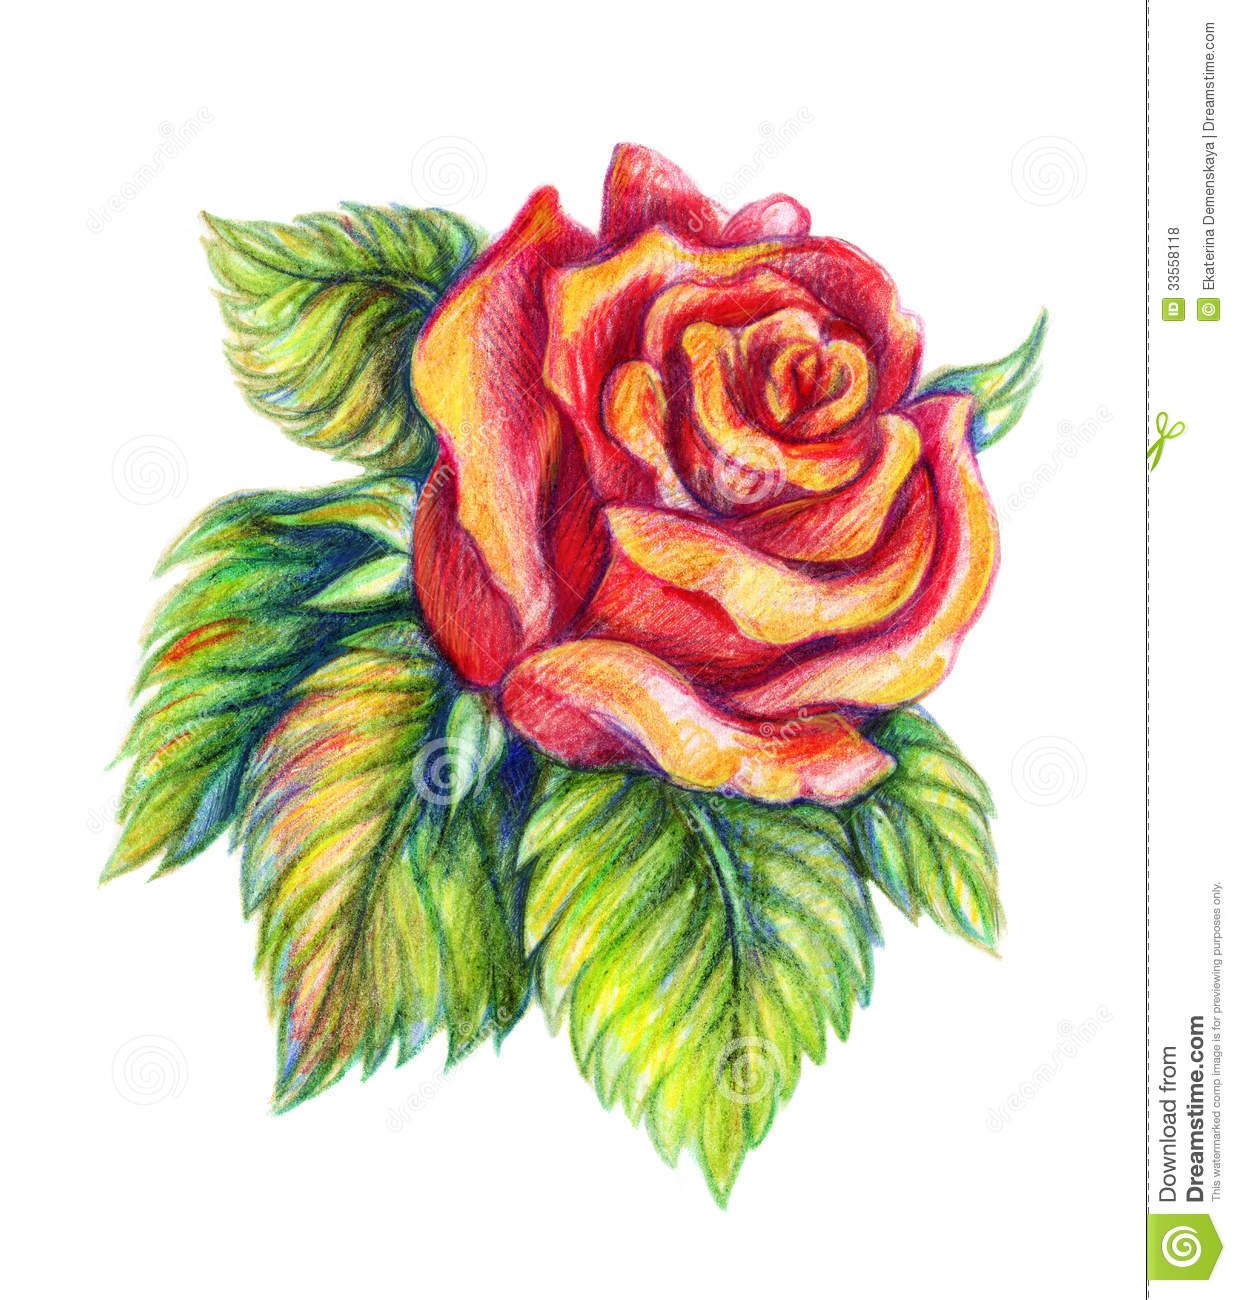 Colored Pencil Drawings Google Search Pencil Drawings Of Flowers Realistic Flower Drawing Beautiful Flower Drawings